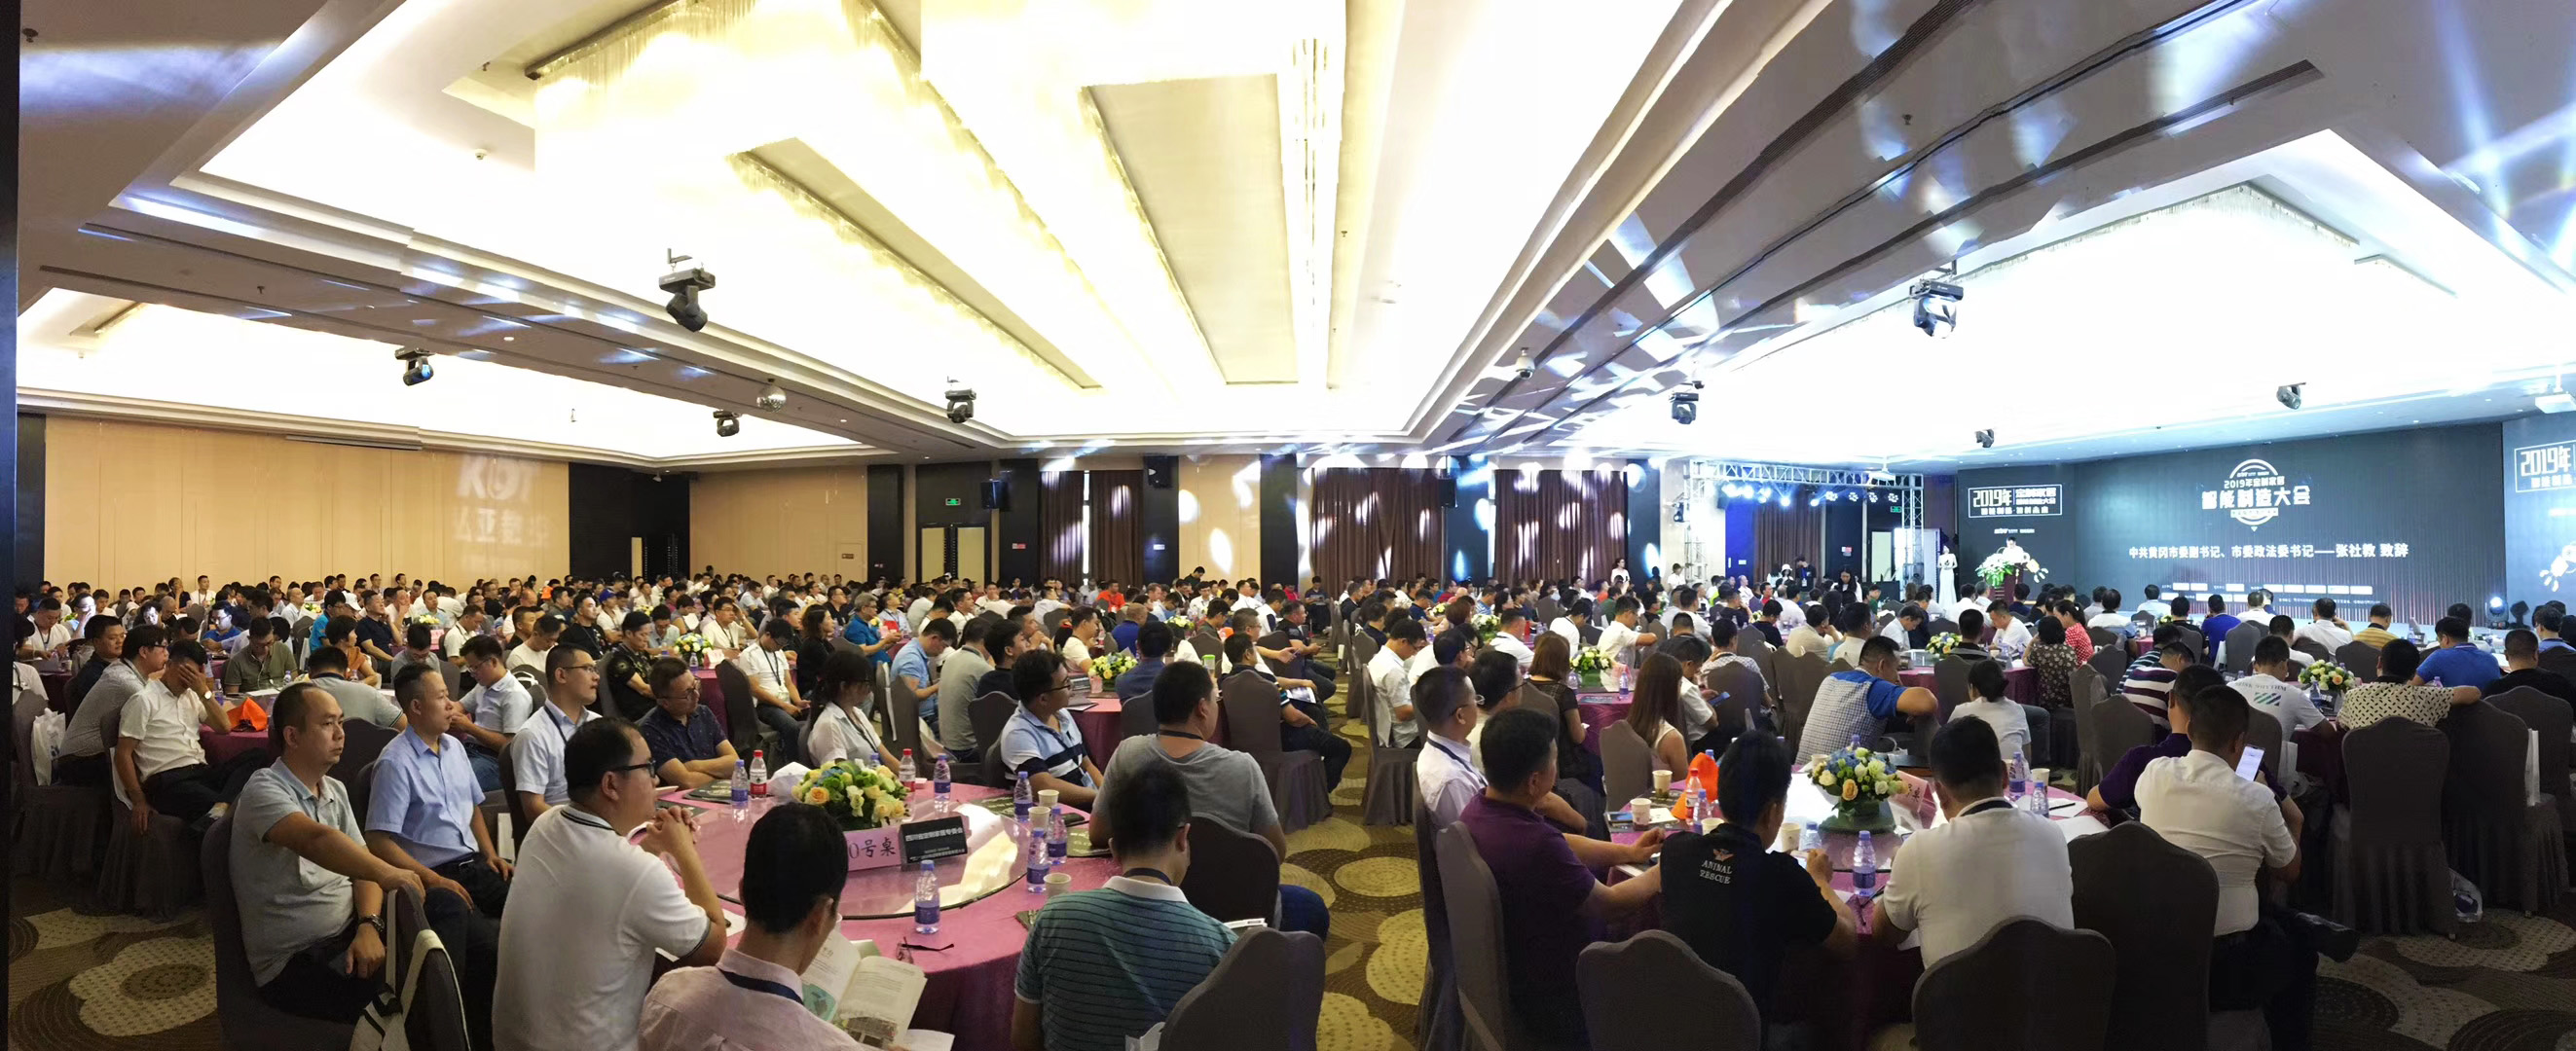 More than 500 people gathered together, and the 2019 customized home smart manufacturing conference